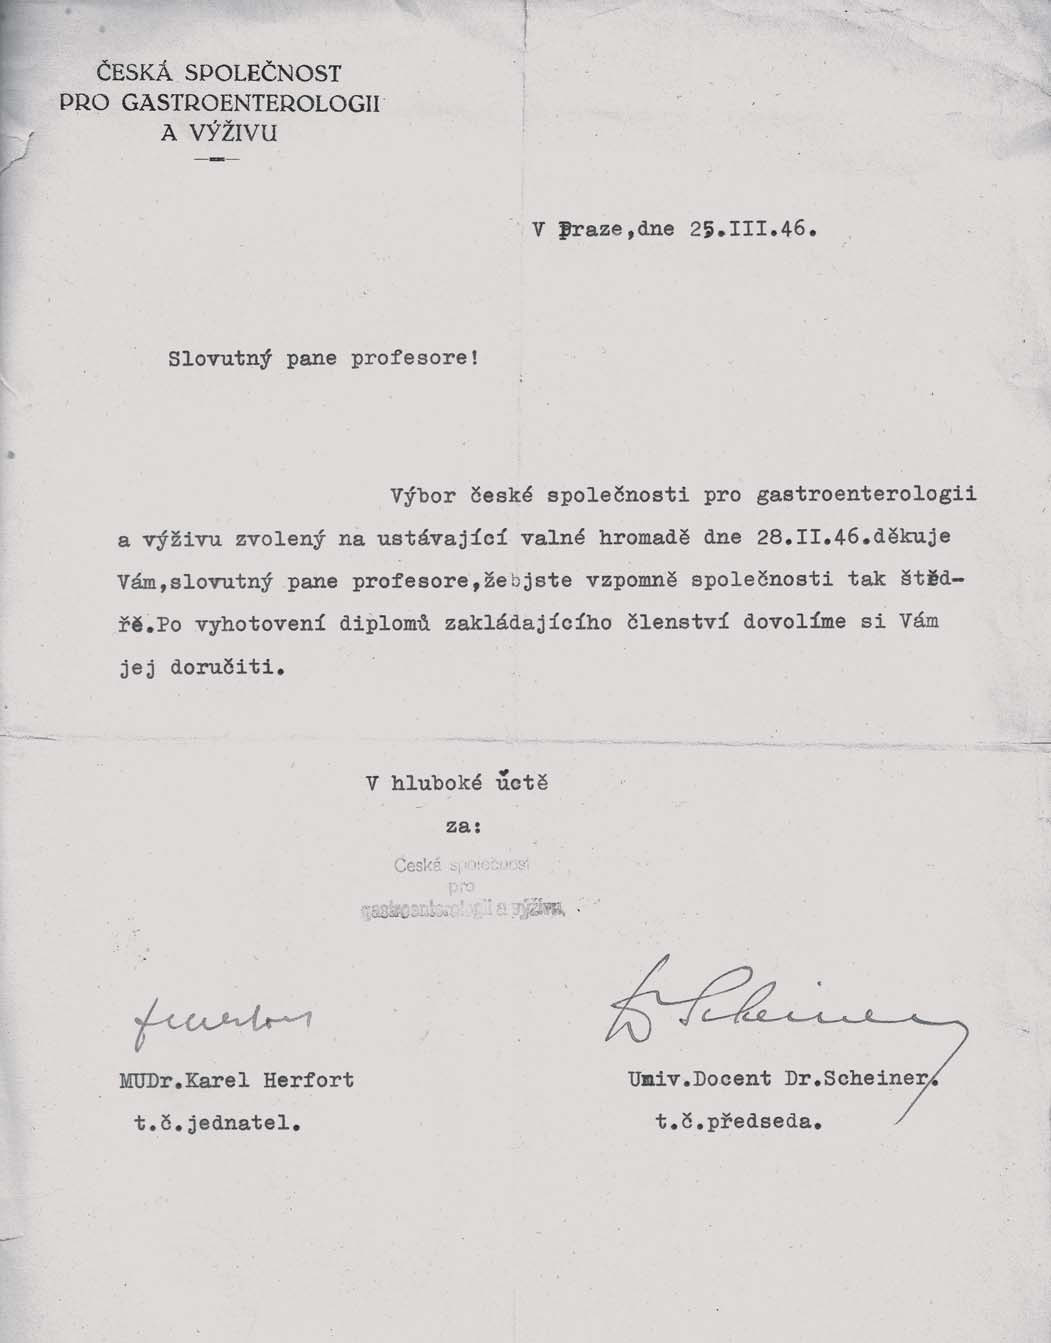 Dopis prof. Prusíkovi z roku 1946 s díky za příspěvek v počátcích společnosti a příslibem diplomu zakládajícího člena.